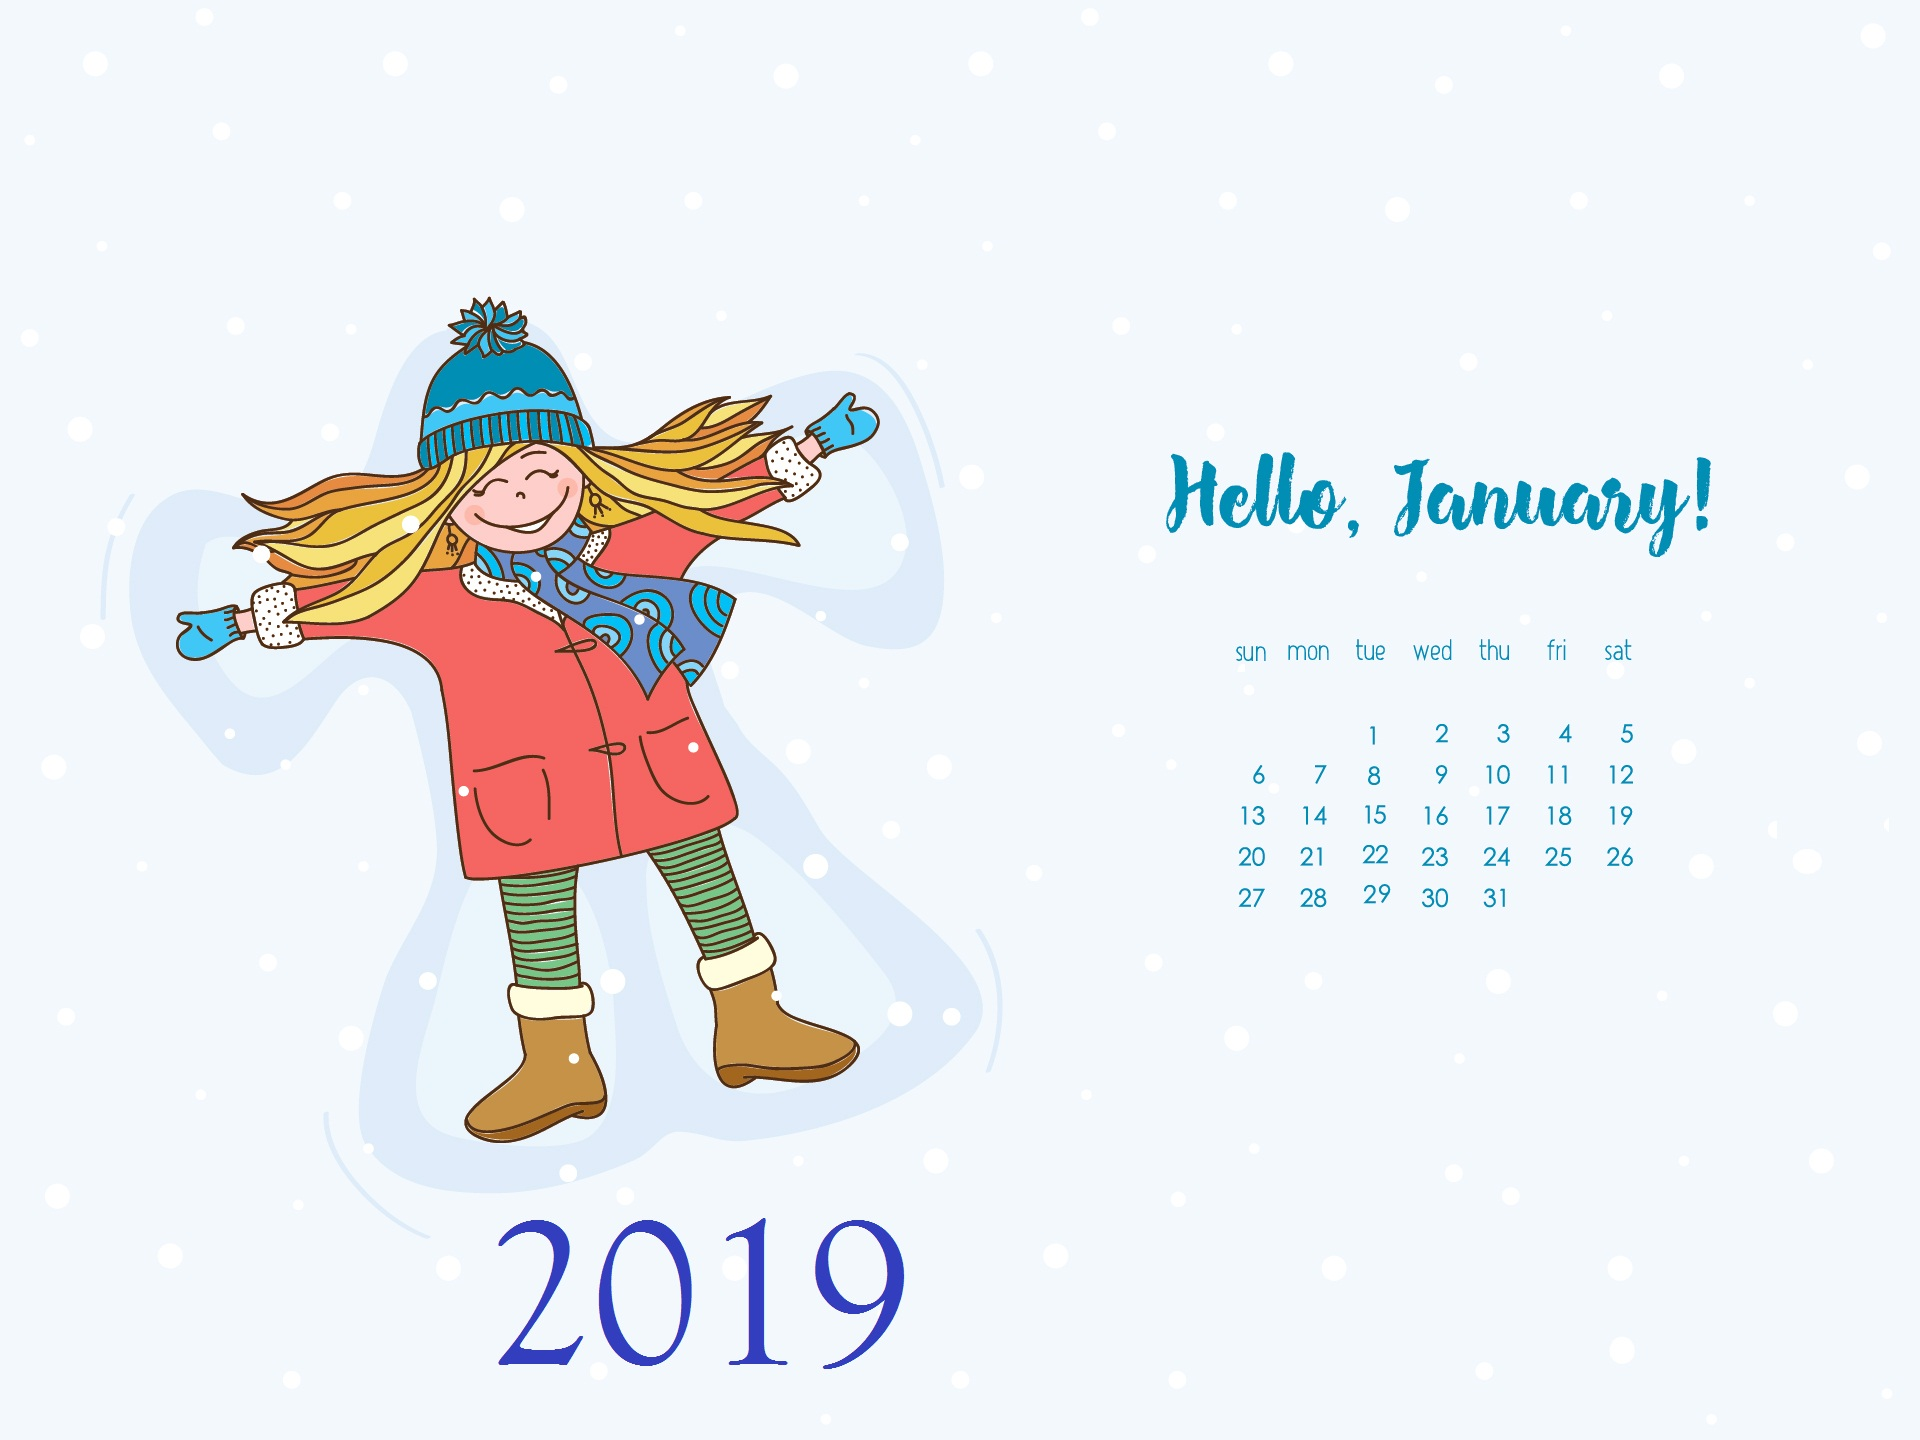 January 2019 HD Wallpaper Desktop Calendar